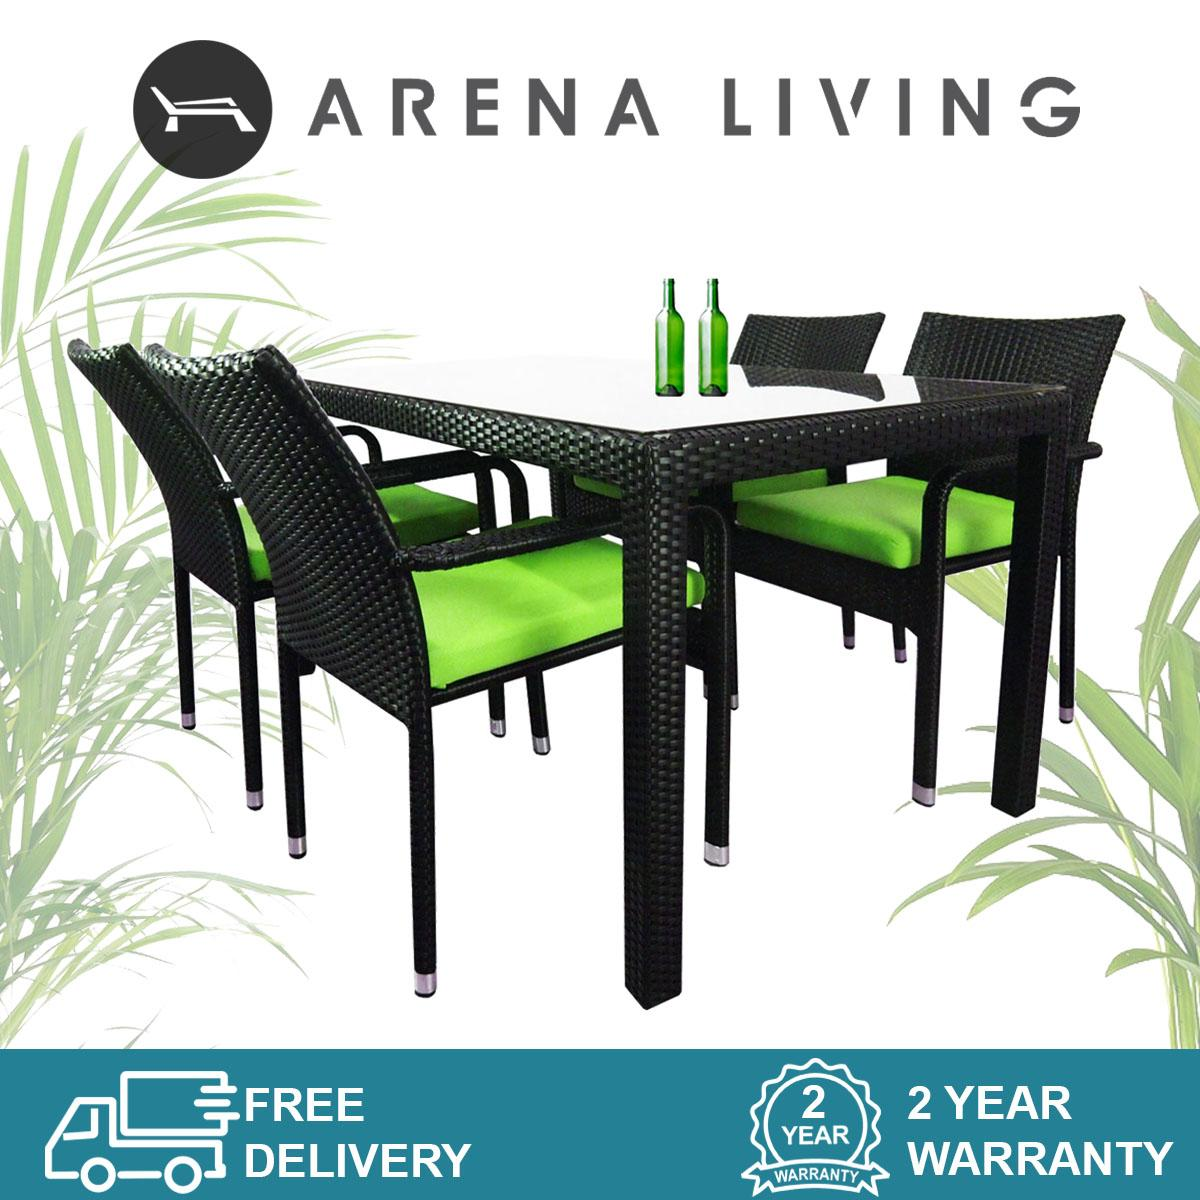 Boulevard 4 Chair Dining Set Green Cushion, Outdoor Furniture by Arena Living™